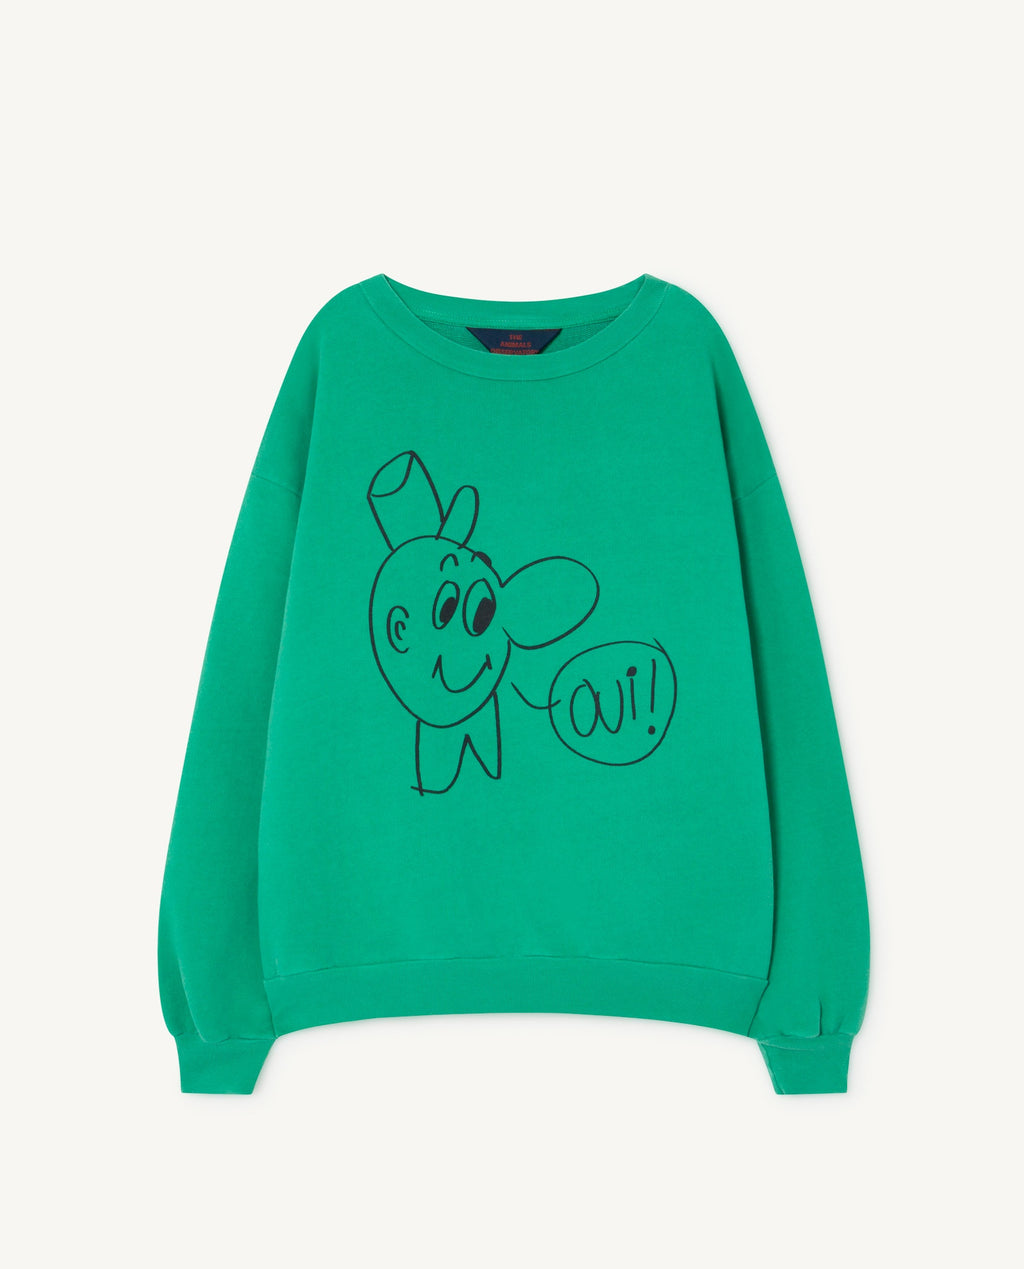 Green Oui Sweatershirt